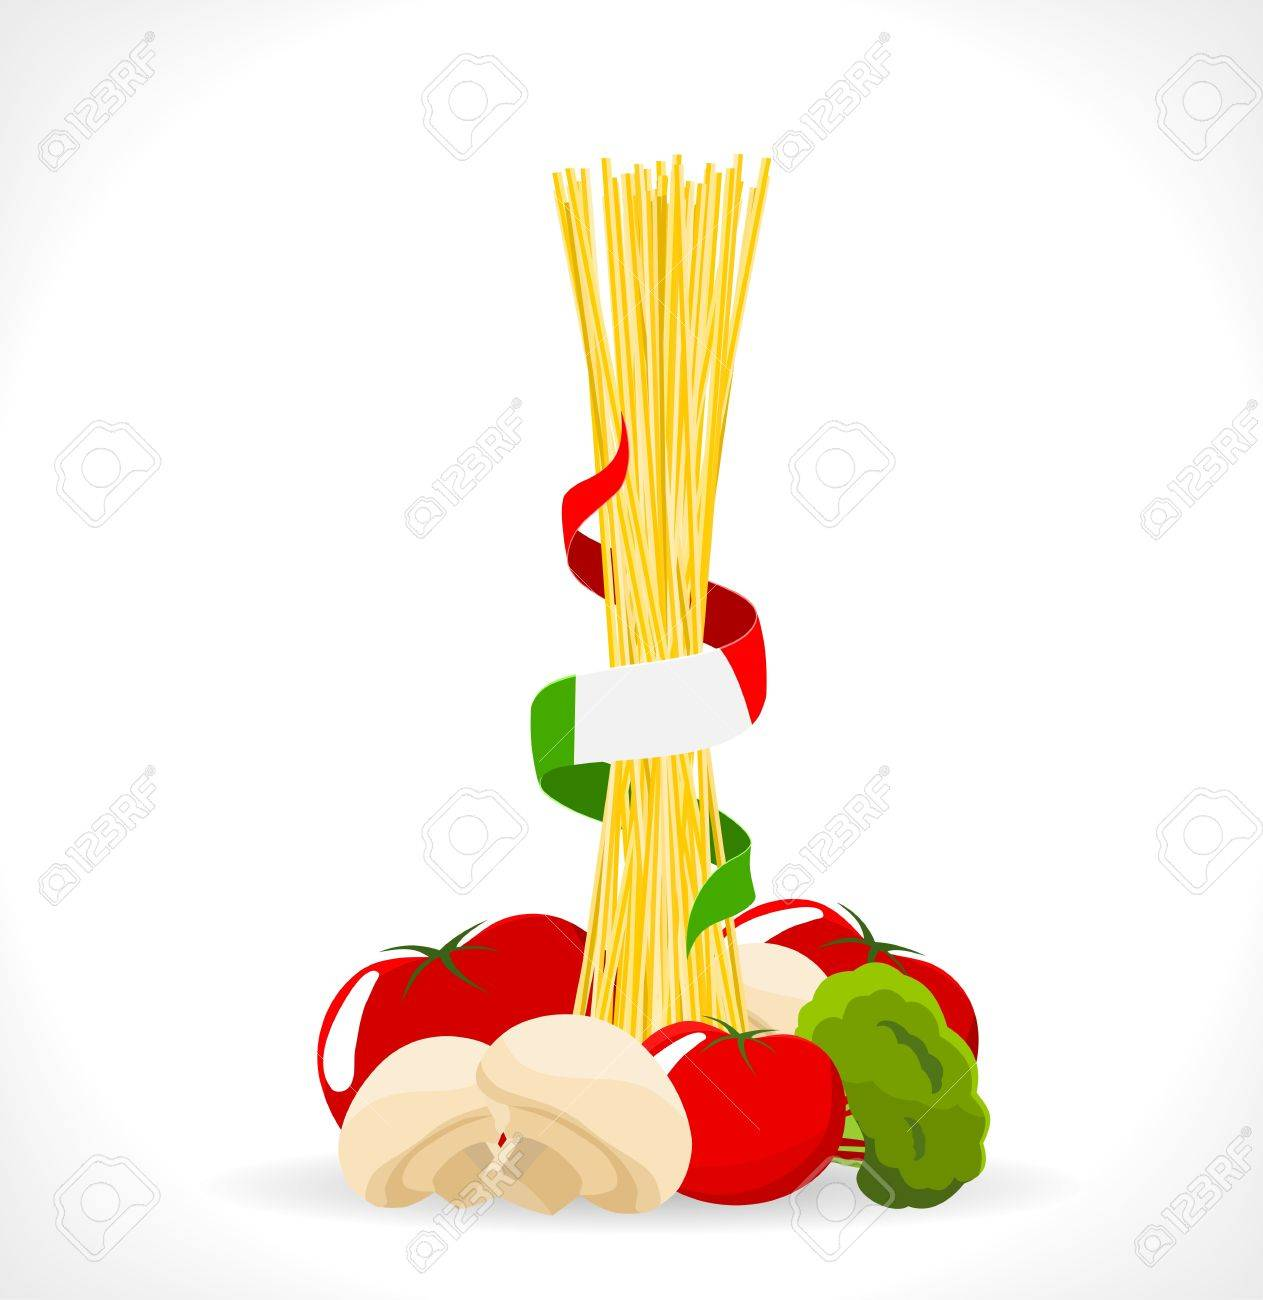 raw spaghetti with mushrooms, tomatoes and broccoli -illustration Stock Vector - 14180776